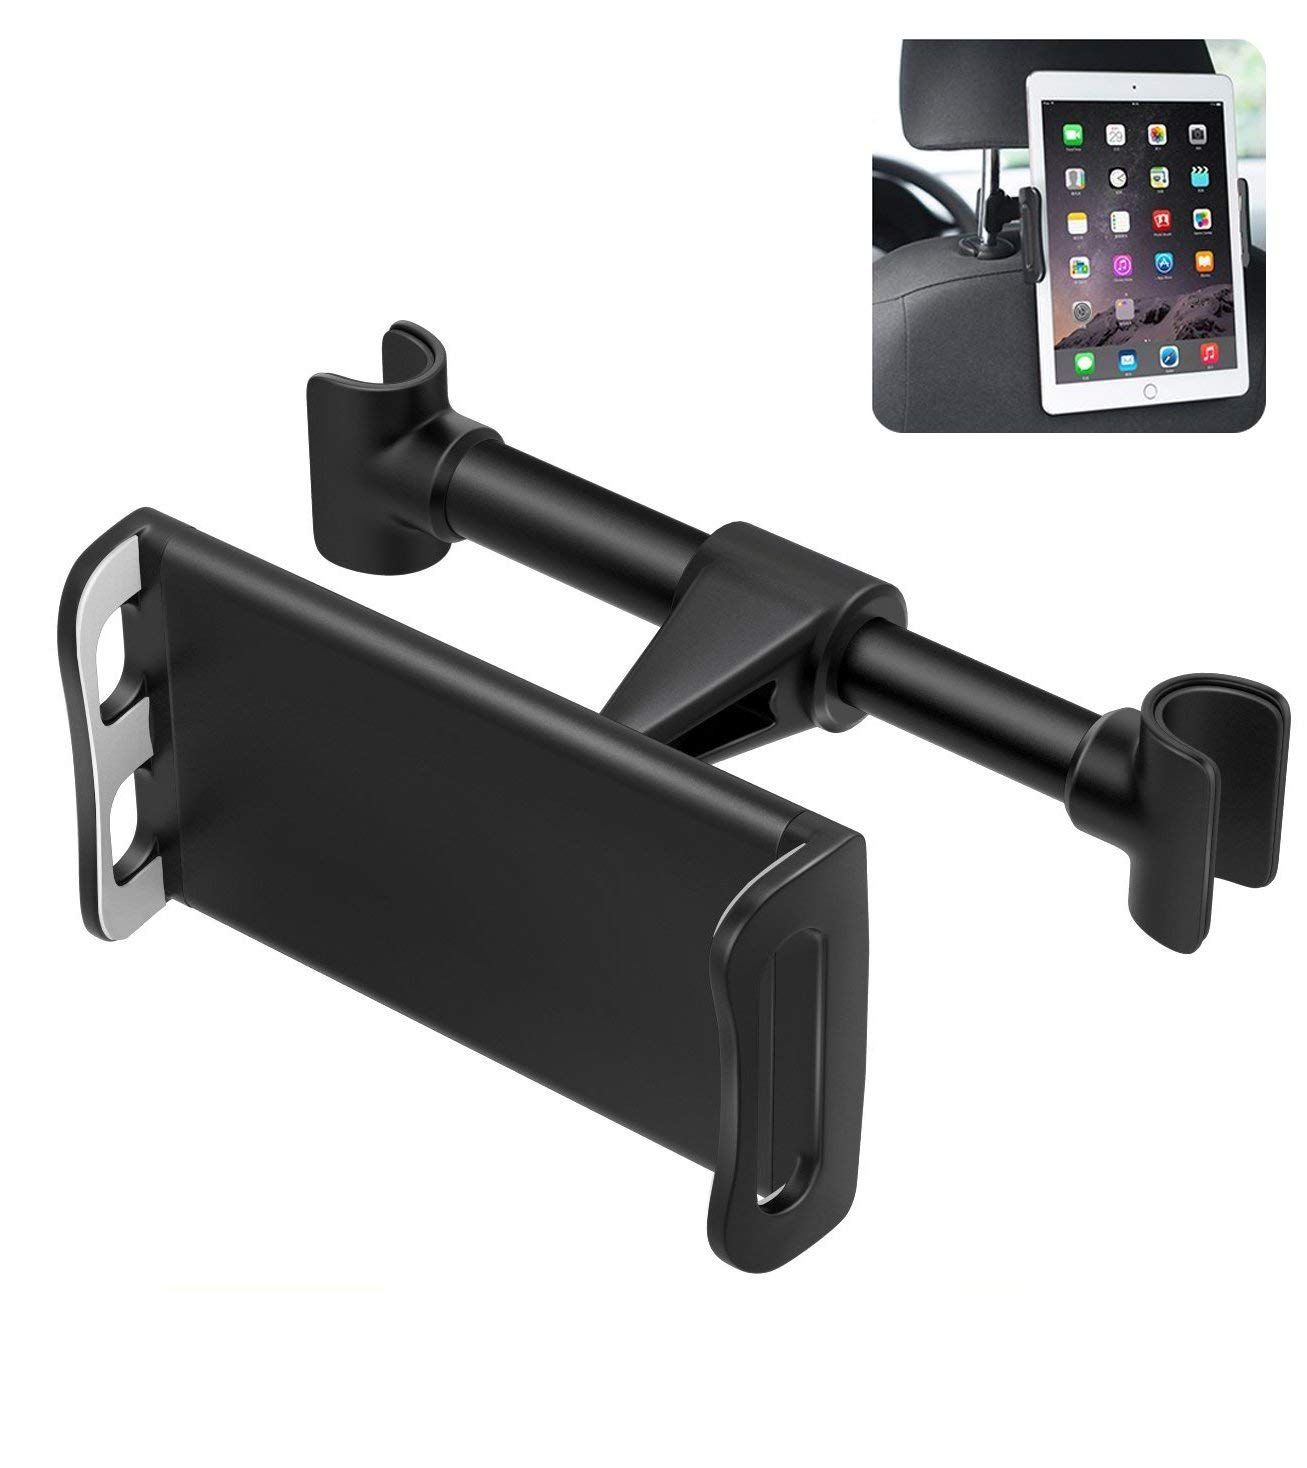 US STOCK Car Seat Stand Mount Headrest Holder for iPad mini Air Pro 11, Samsung Galaxy Tab 3/4, Nexus 7, Kindle Fire 2, HD 6 /7 8